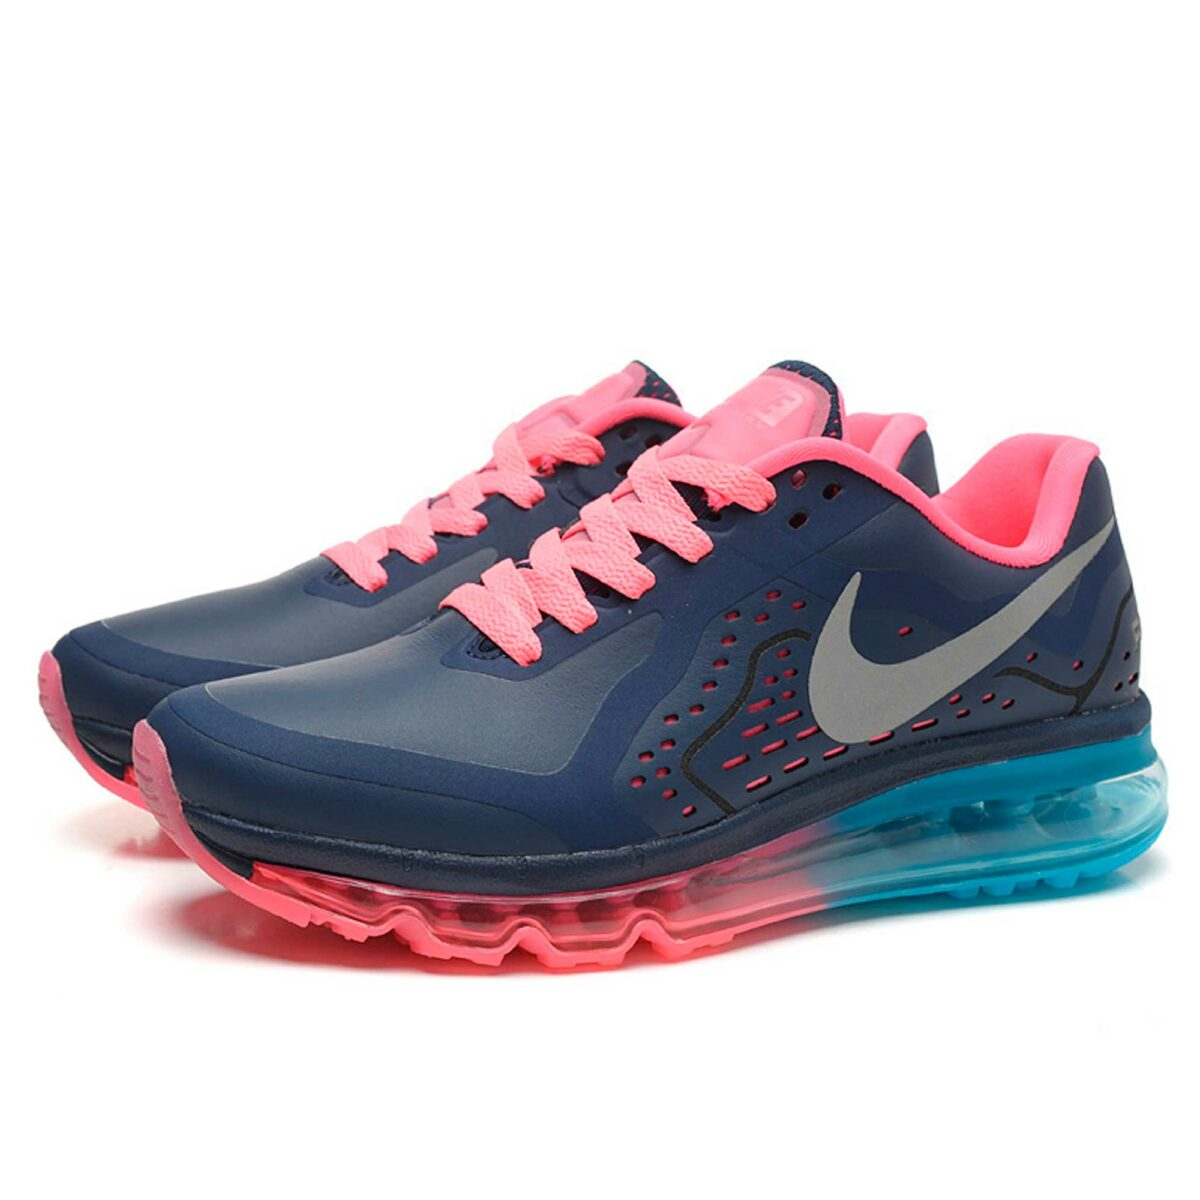 nike air max 2014 dark blue купить